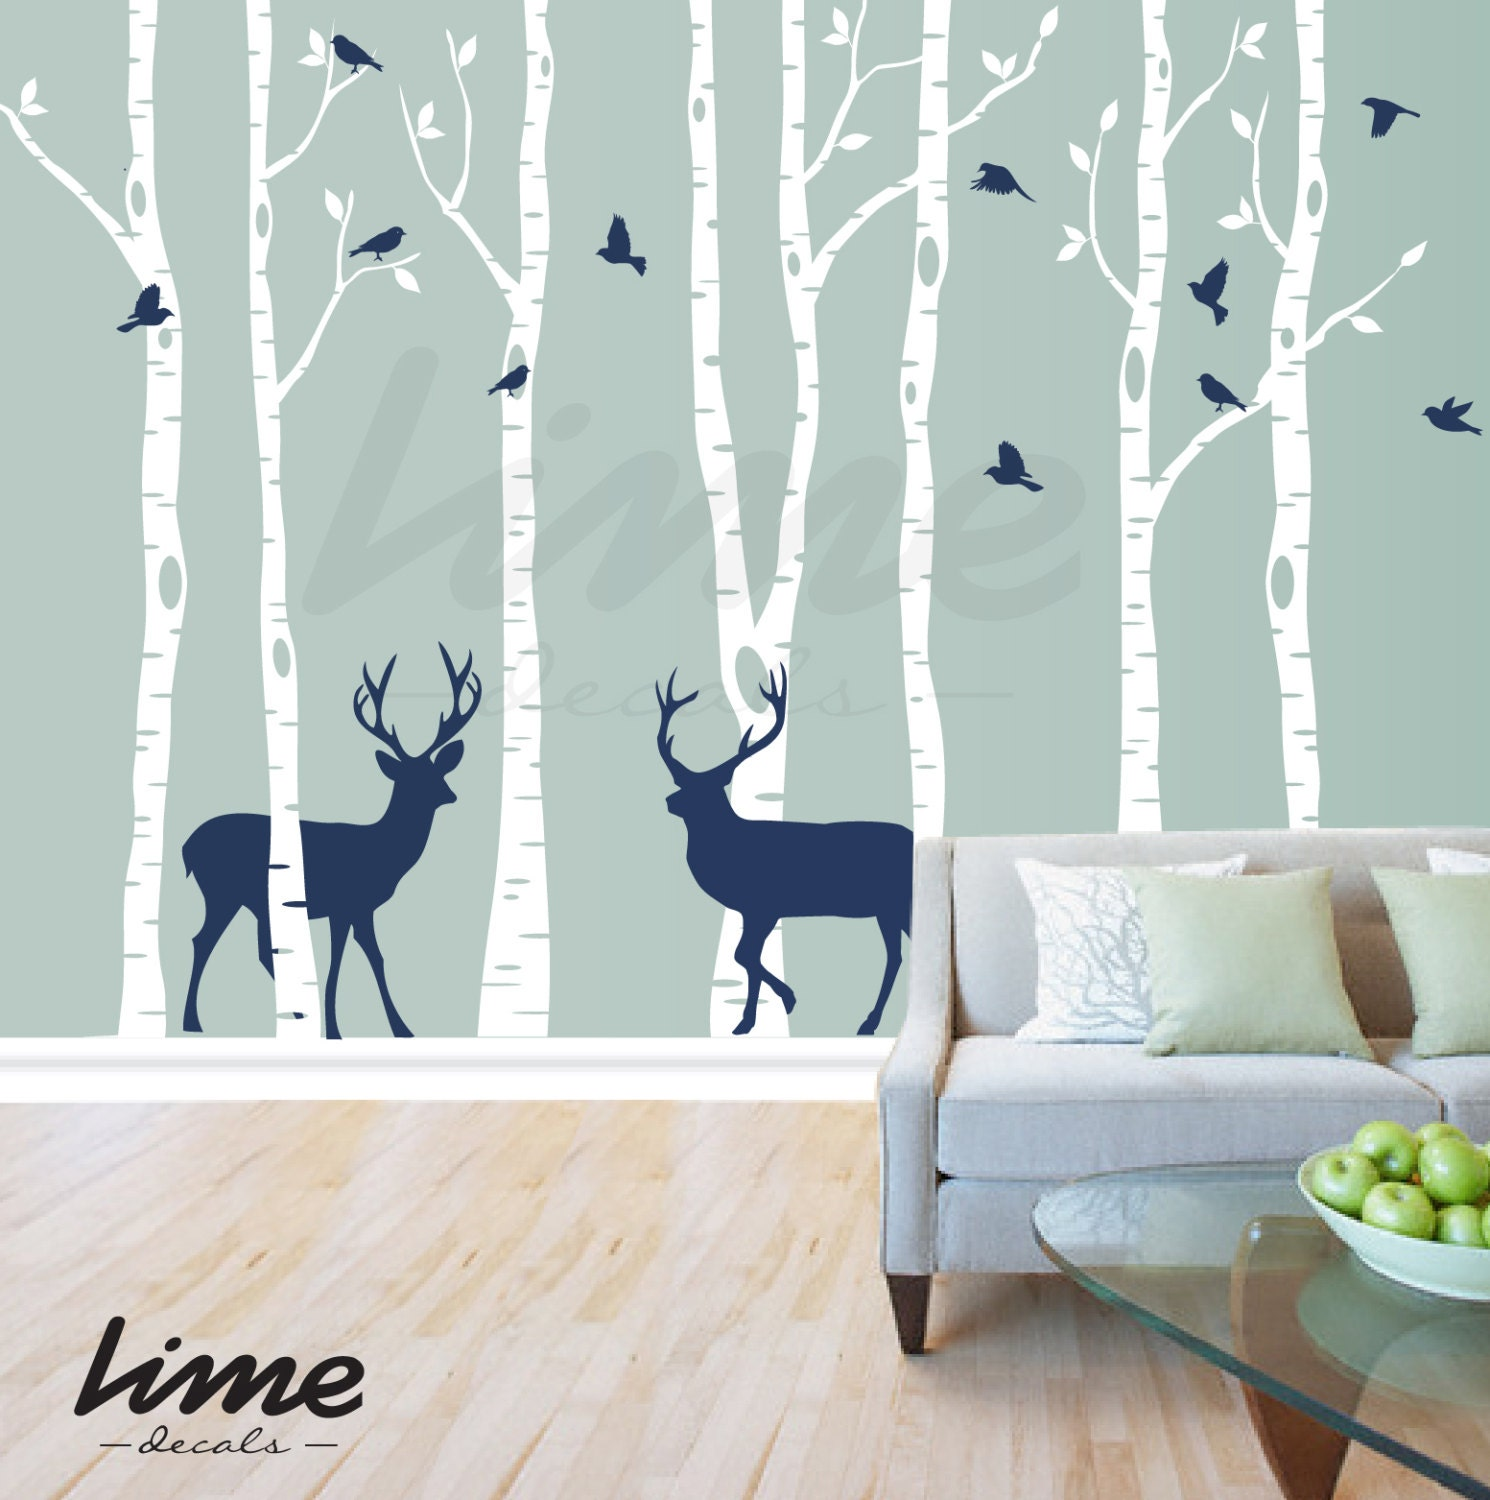 Birch tree deer wall decal forest birch trees birch trees zoom amipublicfo Gallery